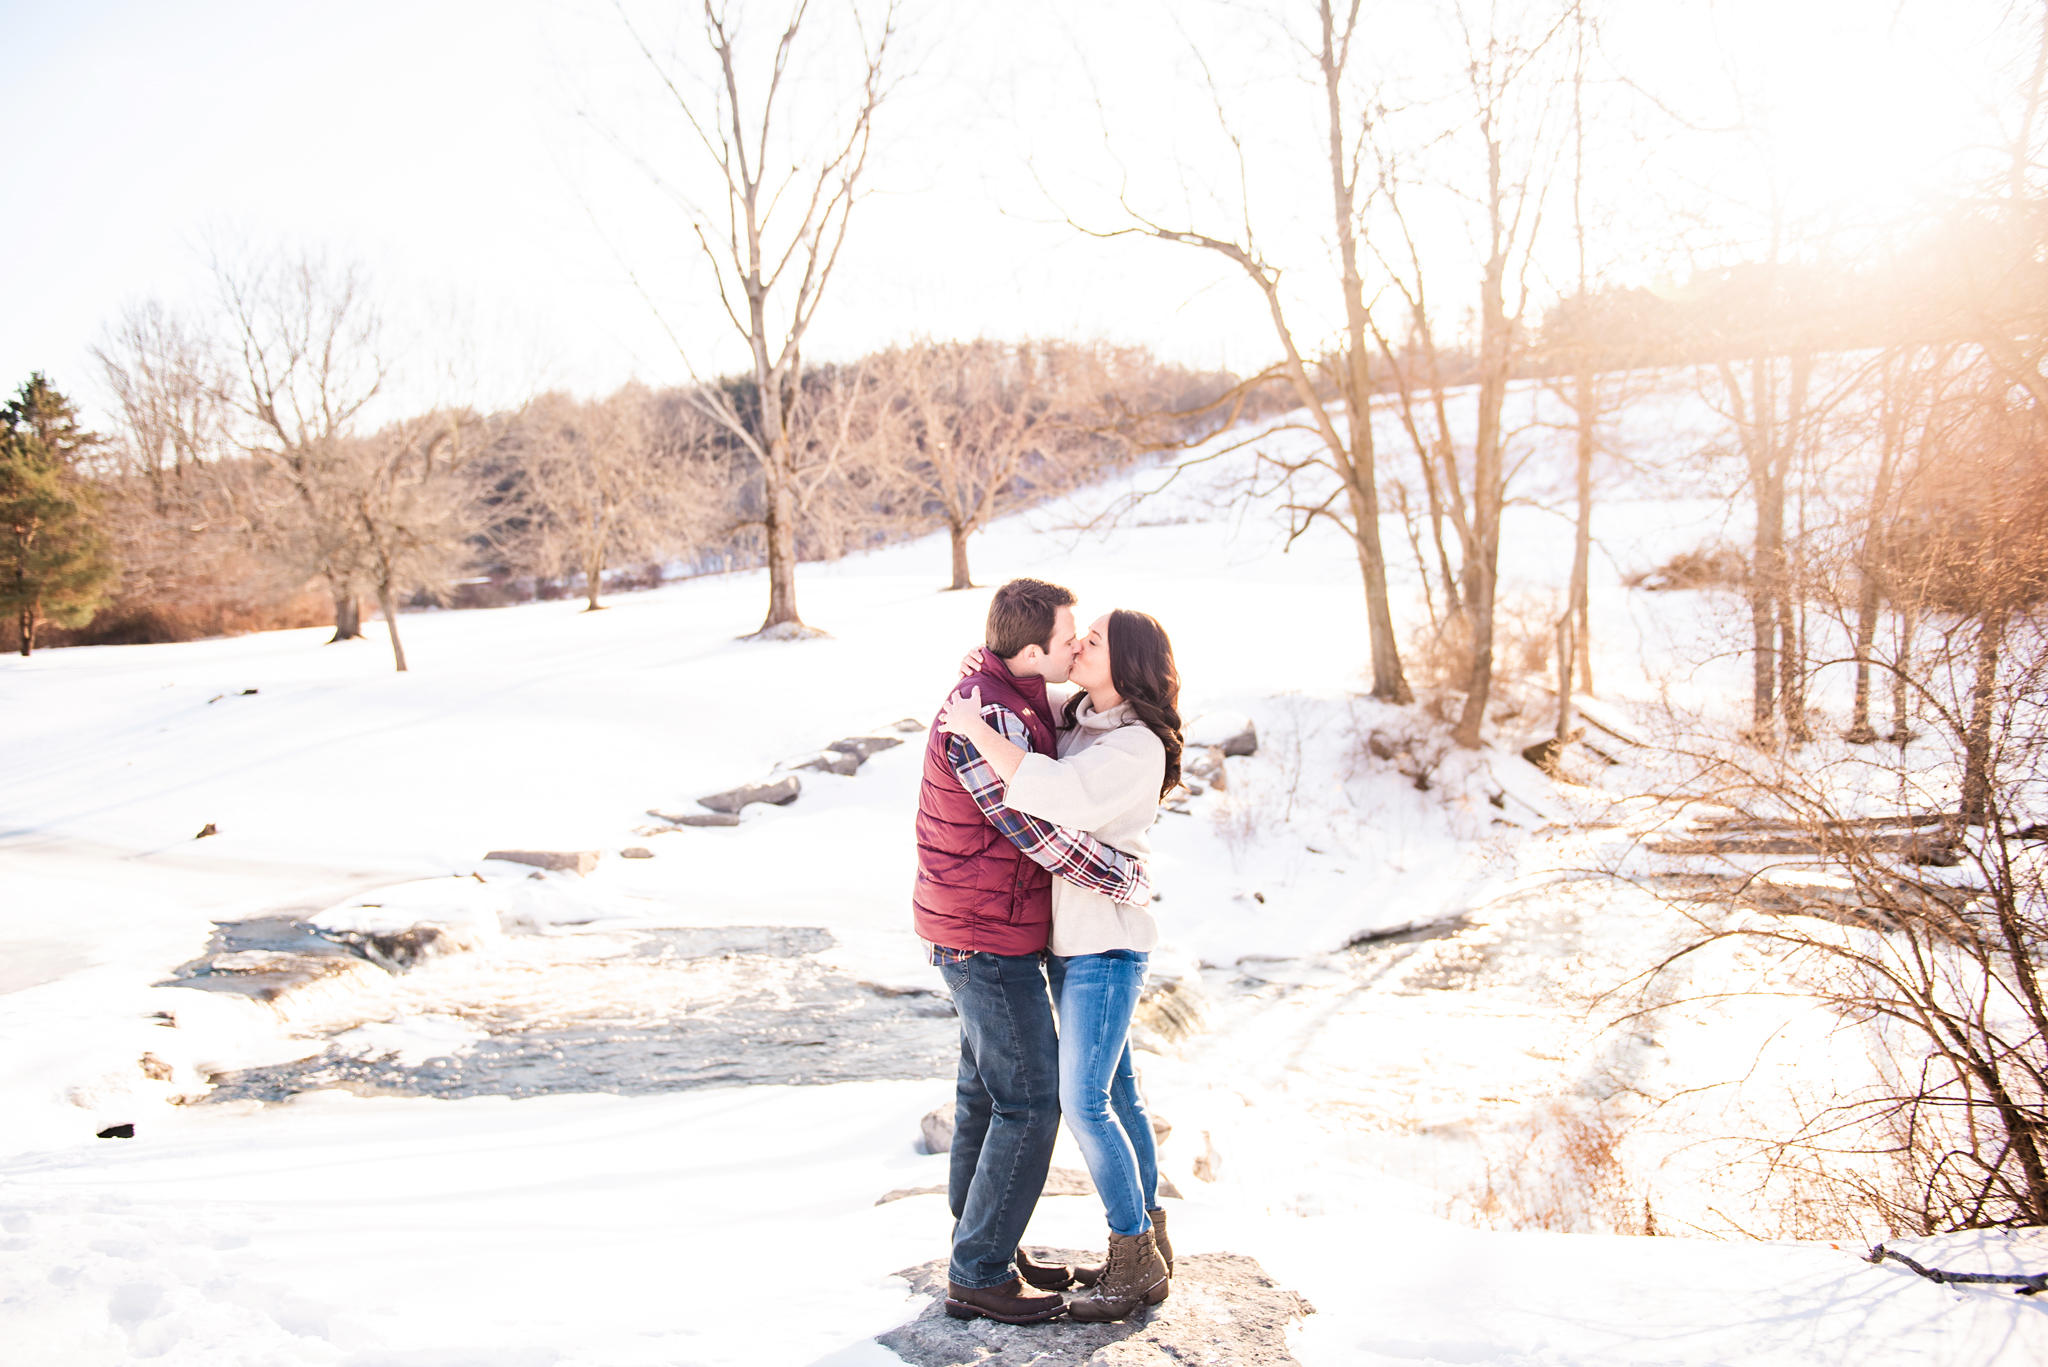 Fallbrook_Central_NY_Engagement_Session_JILL_STUDIO_Rochester_NY_Photographer_DSC_4700.jpg